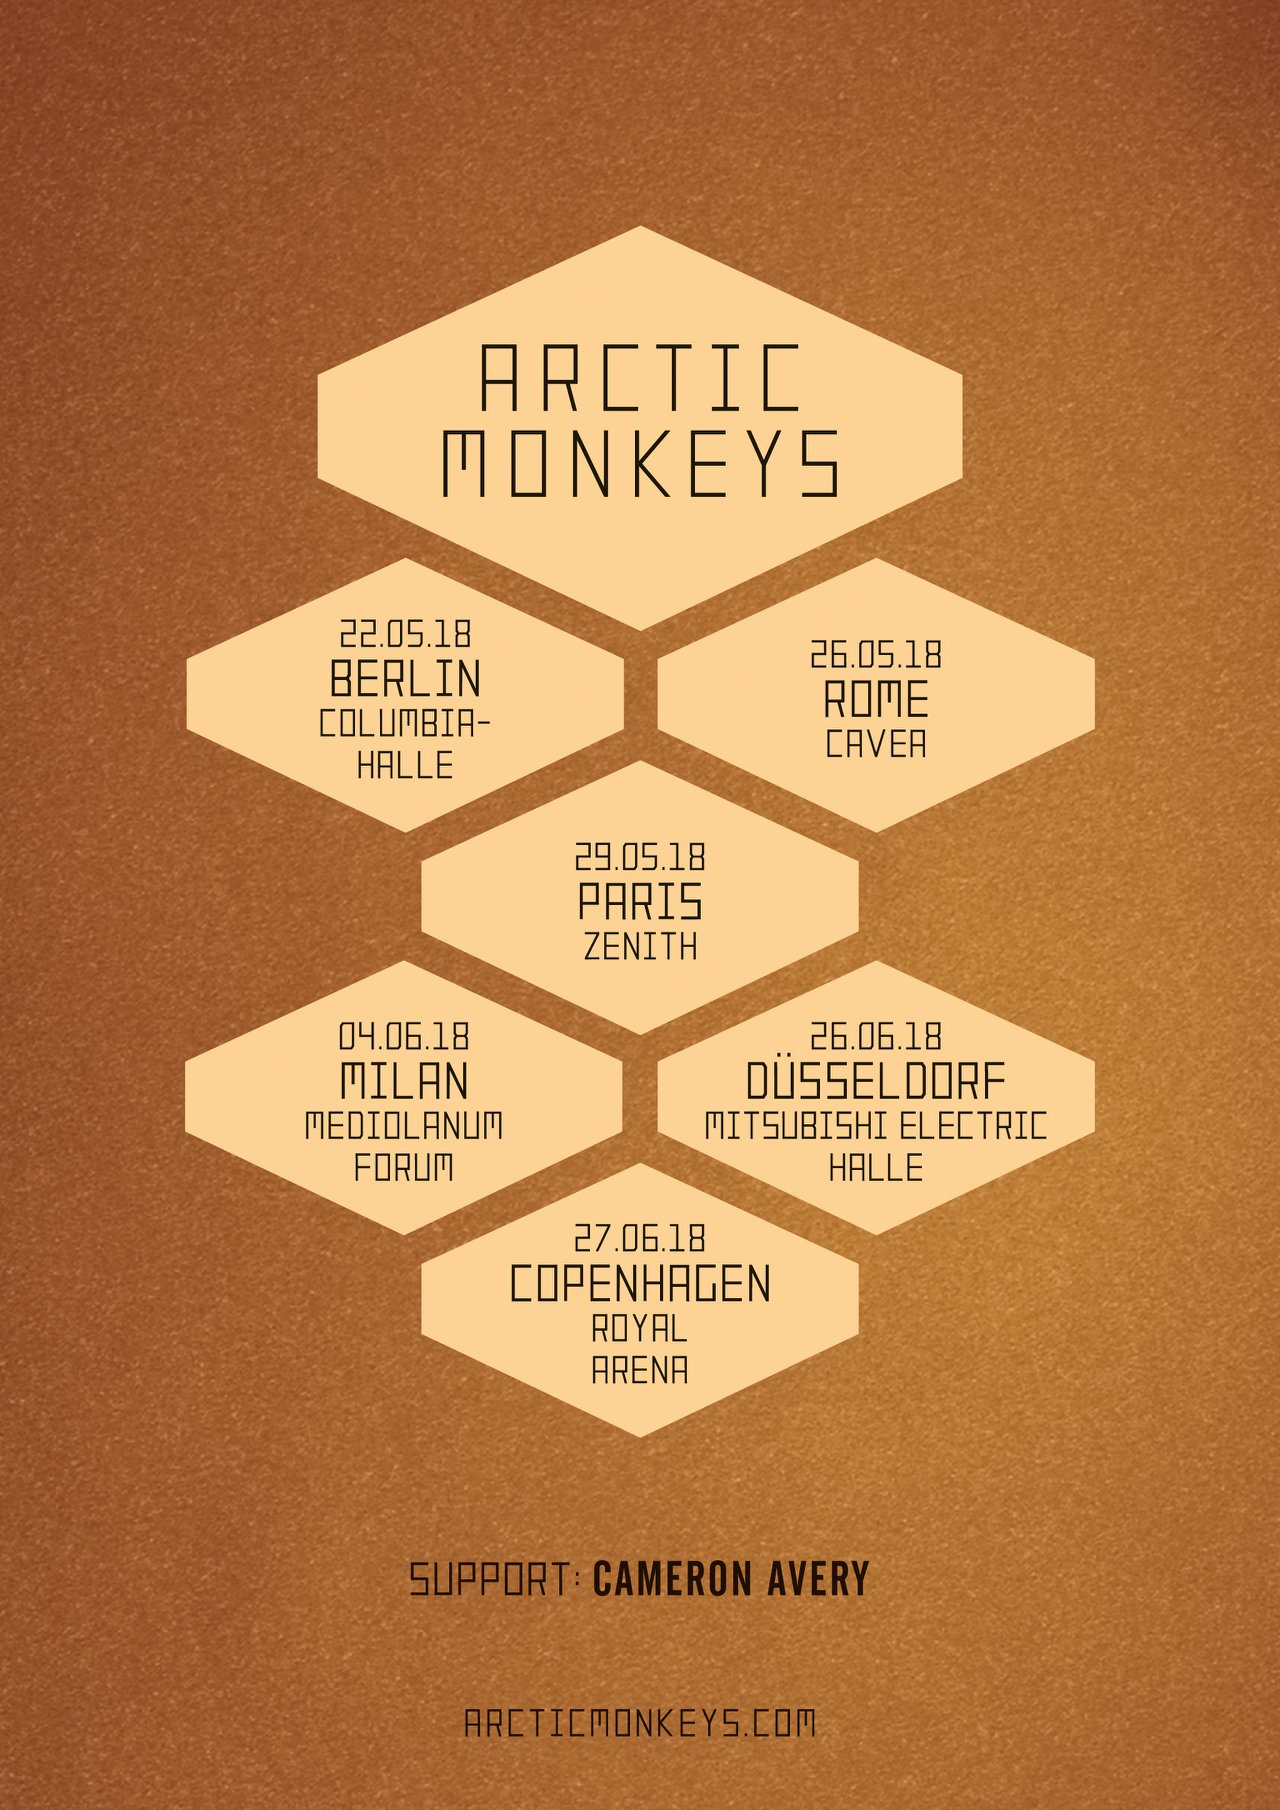 arctic monkeys, rock, 2018, lyon, paris